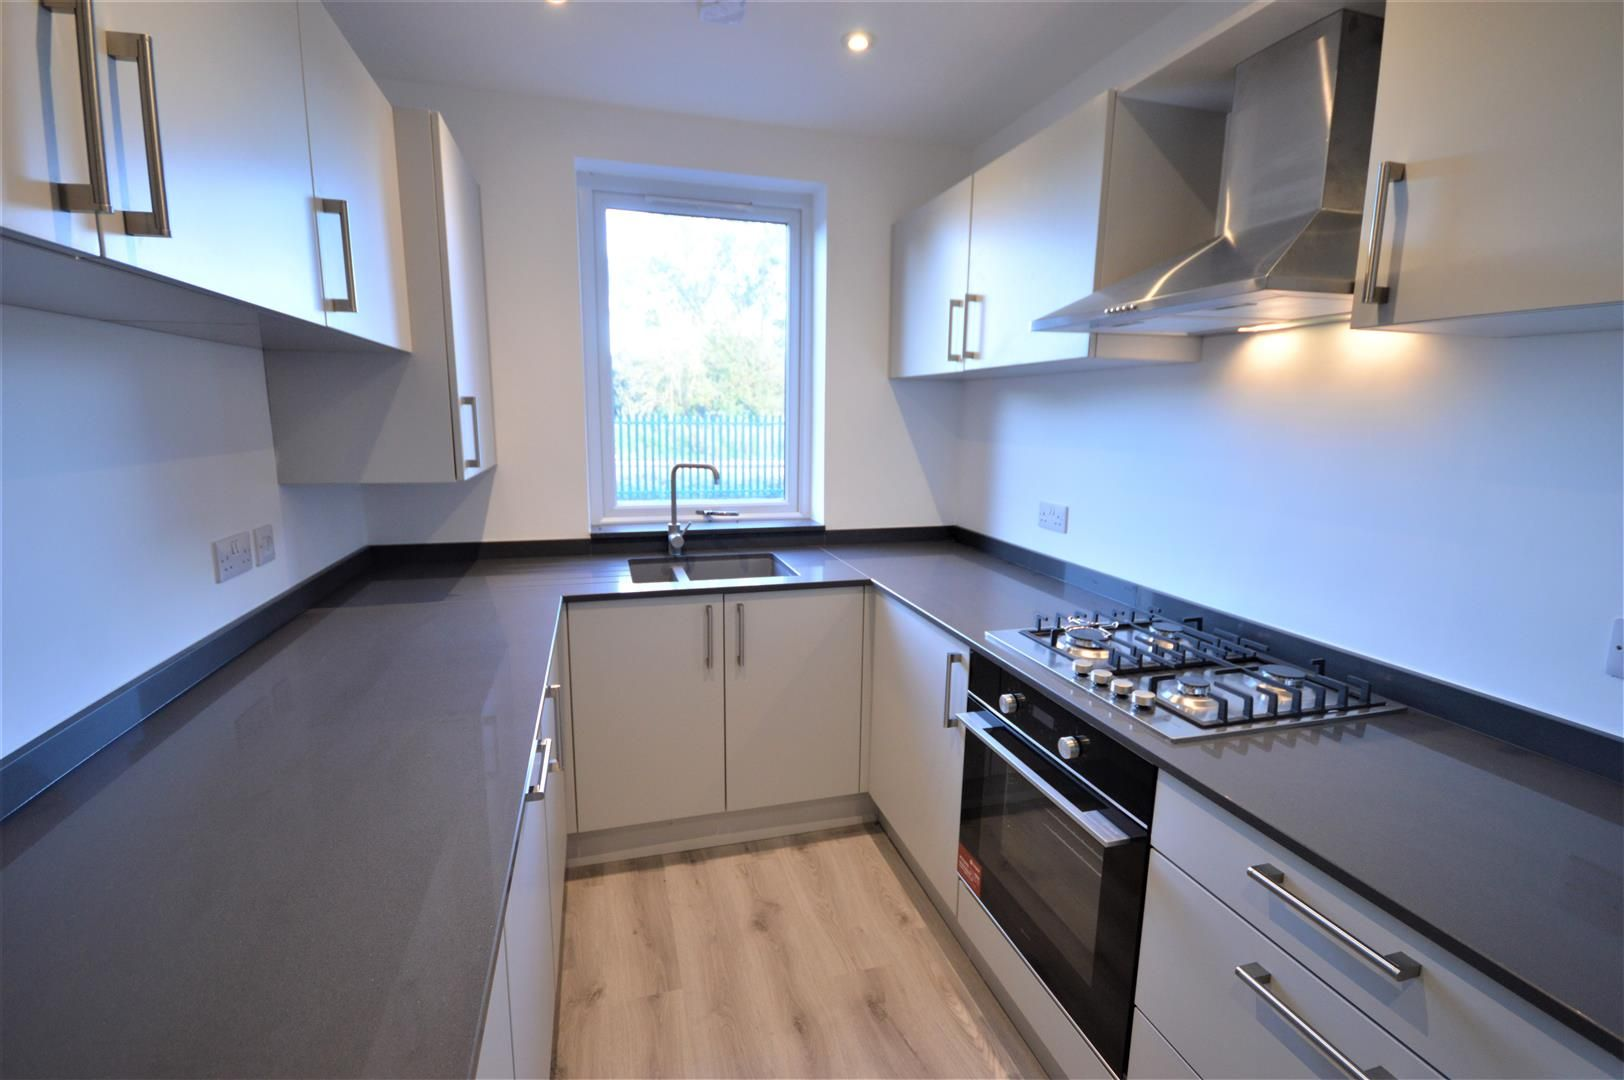 3 bed terraced for sale in Leominster  - Property Image 3